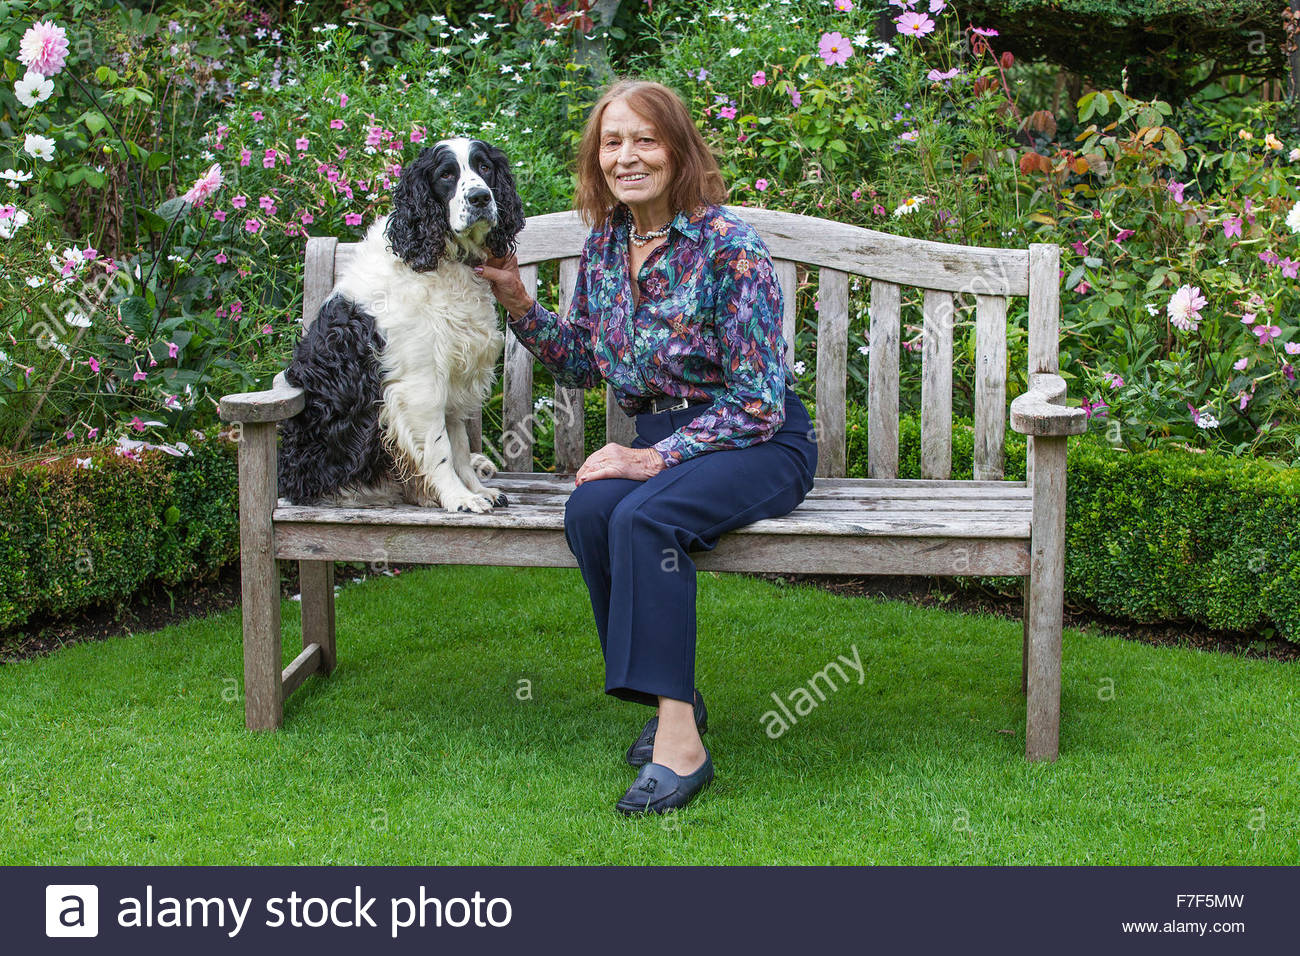 Chenies Manor Gardens - Owner Mrs McCloud Mathews with Chess her dog. - Stock Image